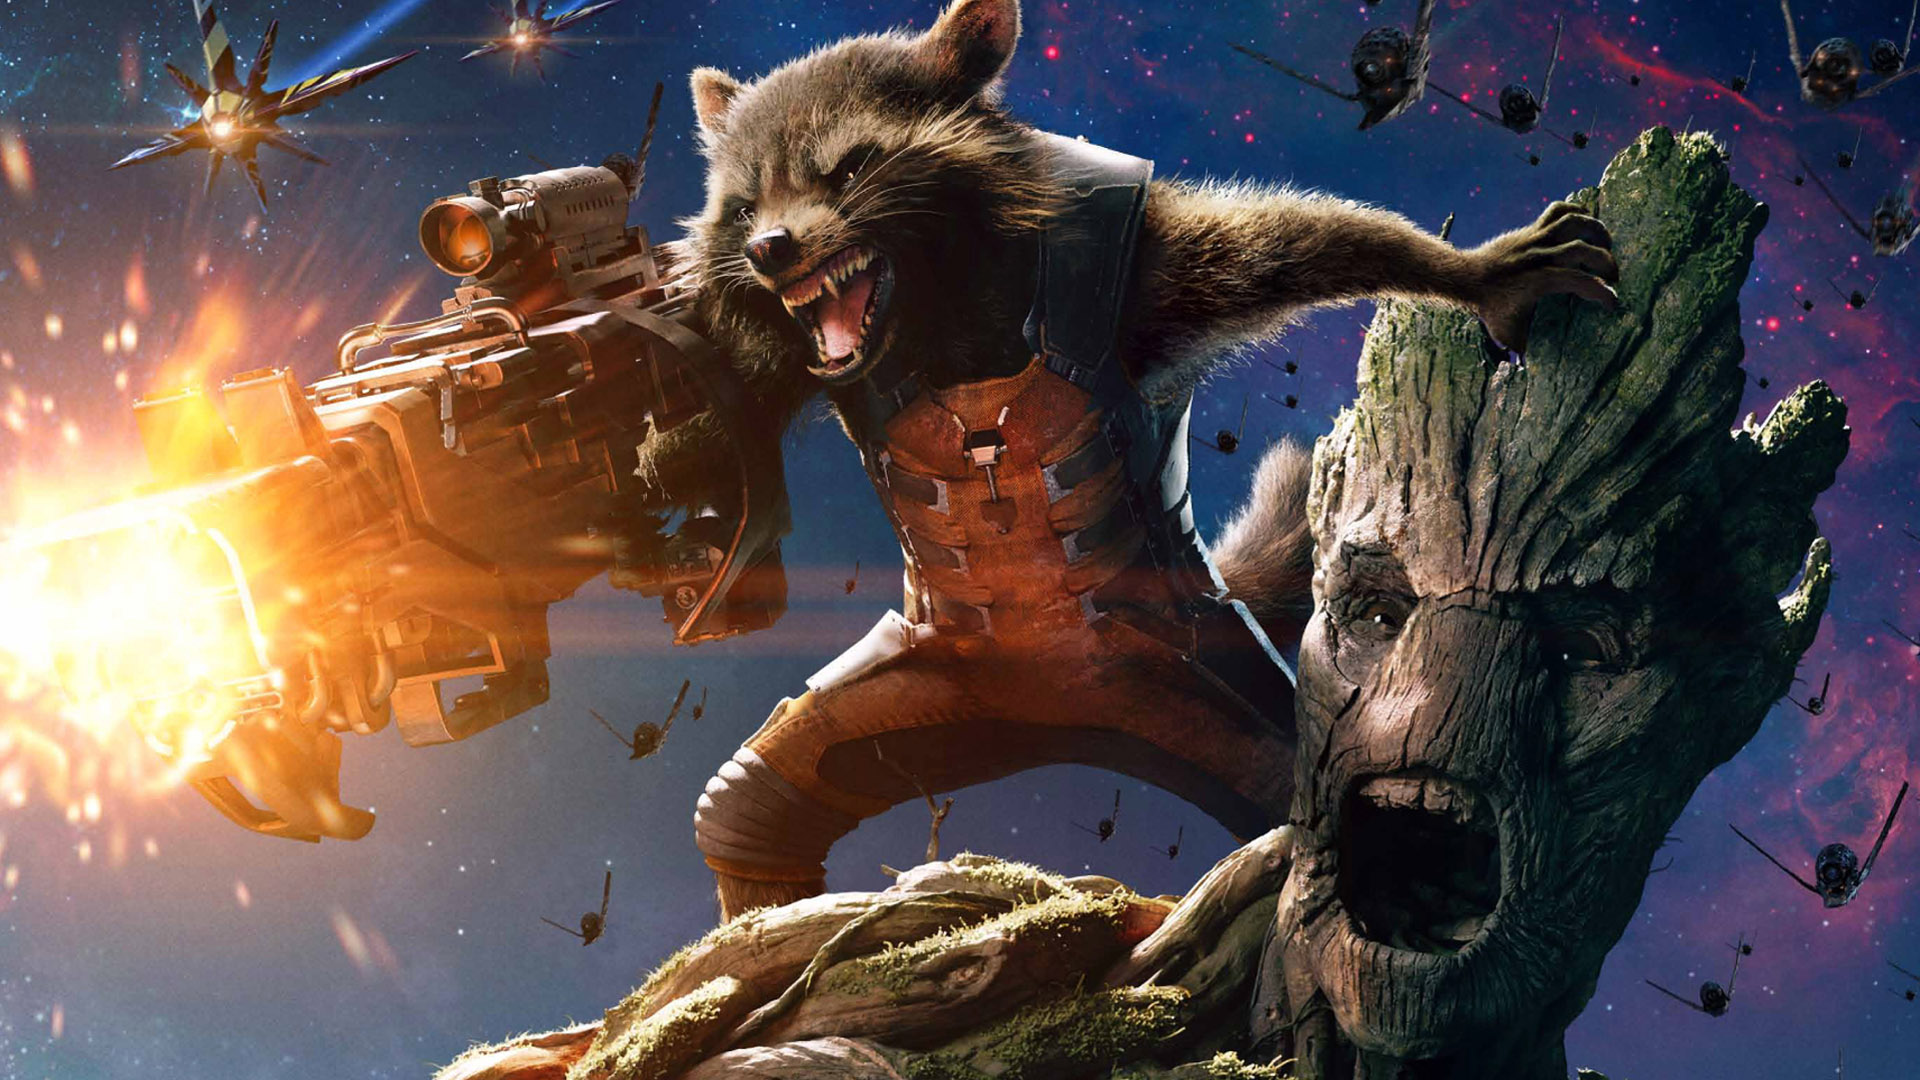 Guardians of the Galaxy: Rocket Raccoon & Groot Steal the Galaxy Review